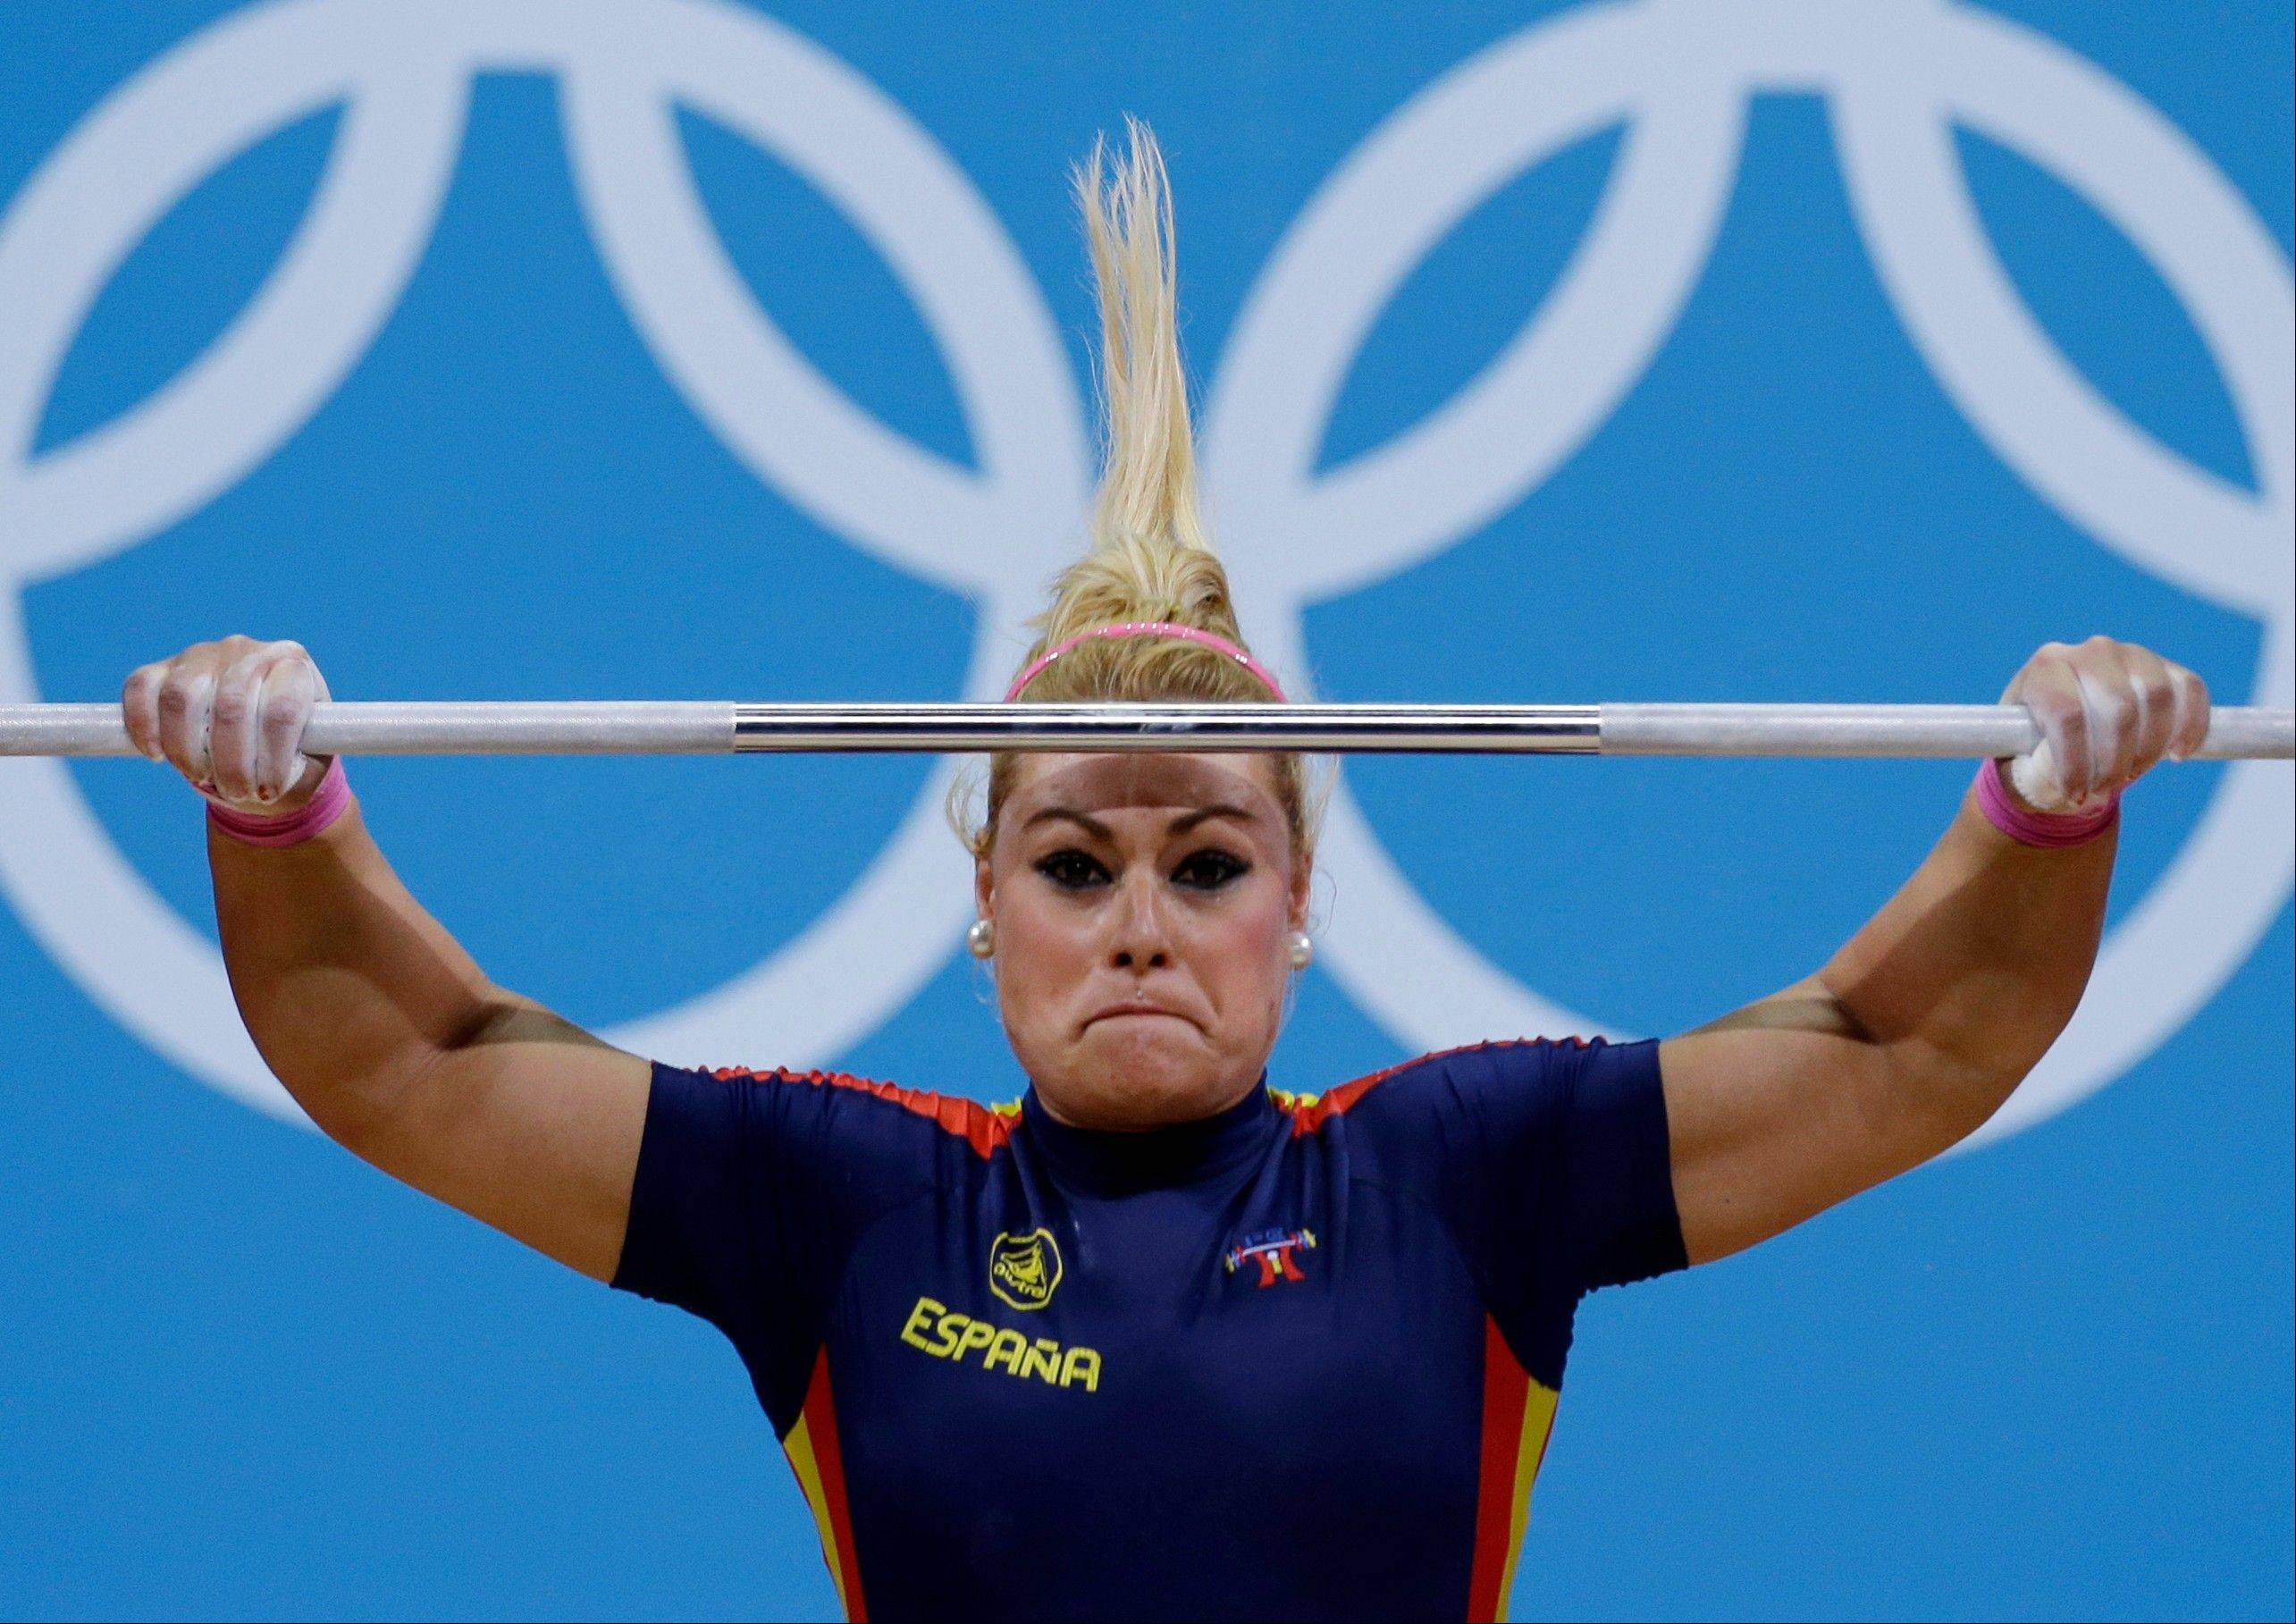 Lidia Valentin Perez of Spain competes during the women's 75-kg, group A, weightlifting competition at the 2012 Summer Olympics, Friday, Aug. 3, 2012, in London.